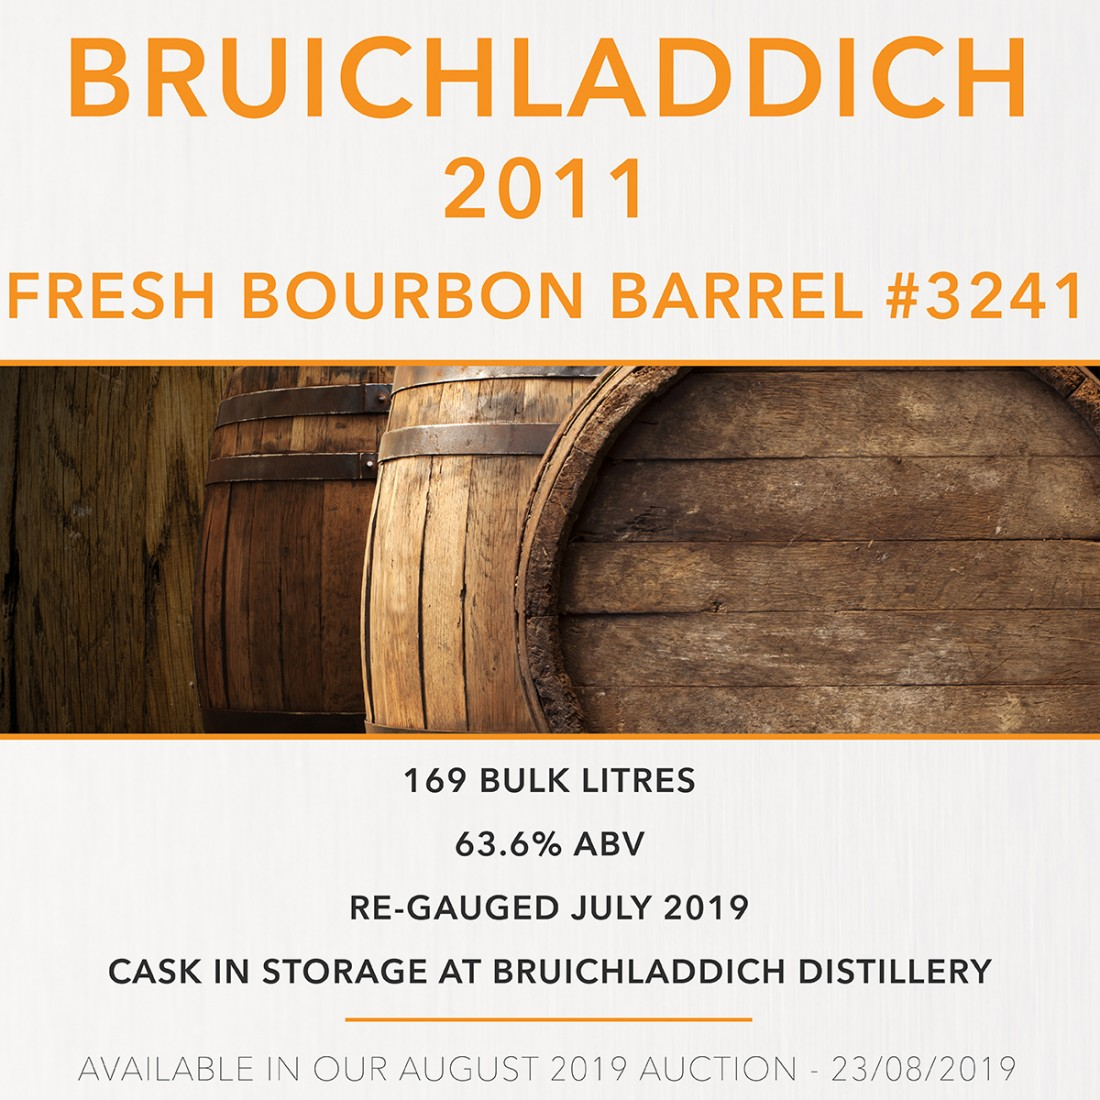 1 Bruichladdich 2011 Fresh Bourbon Barrel #3241 / Cask in storage at Bruichladdich